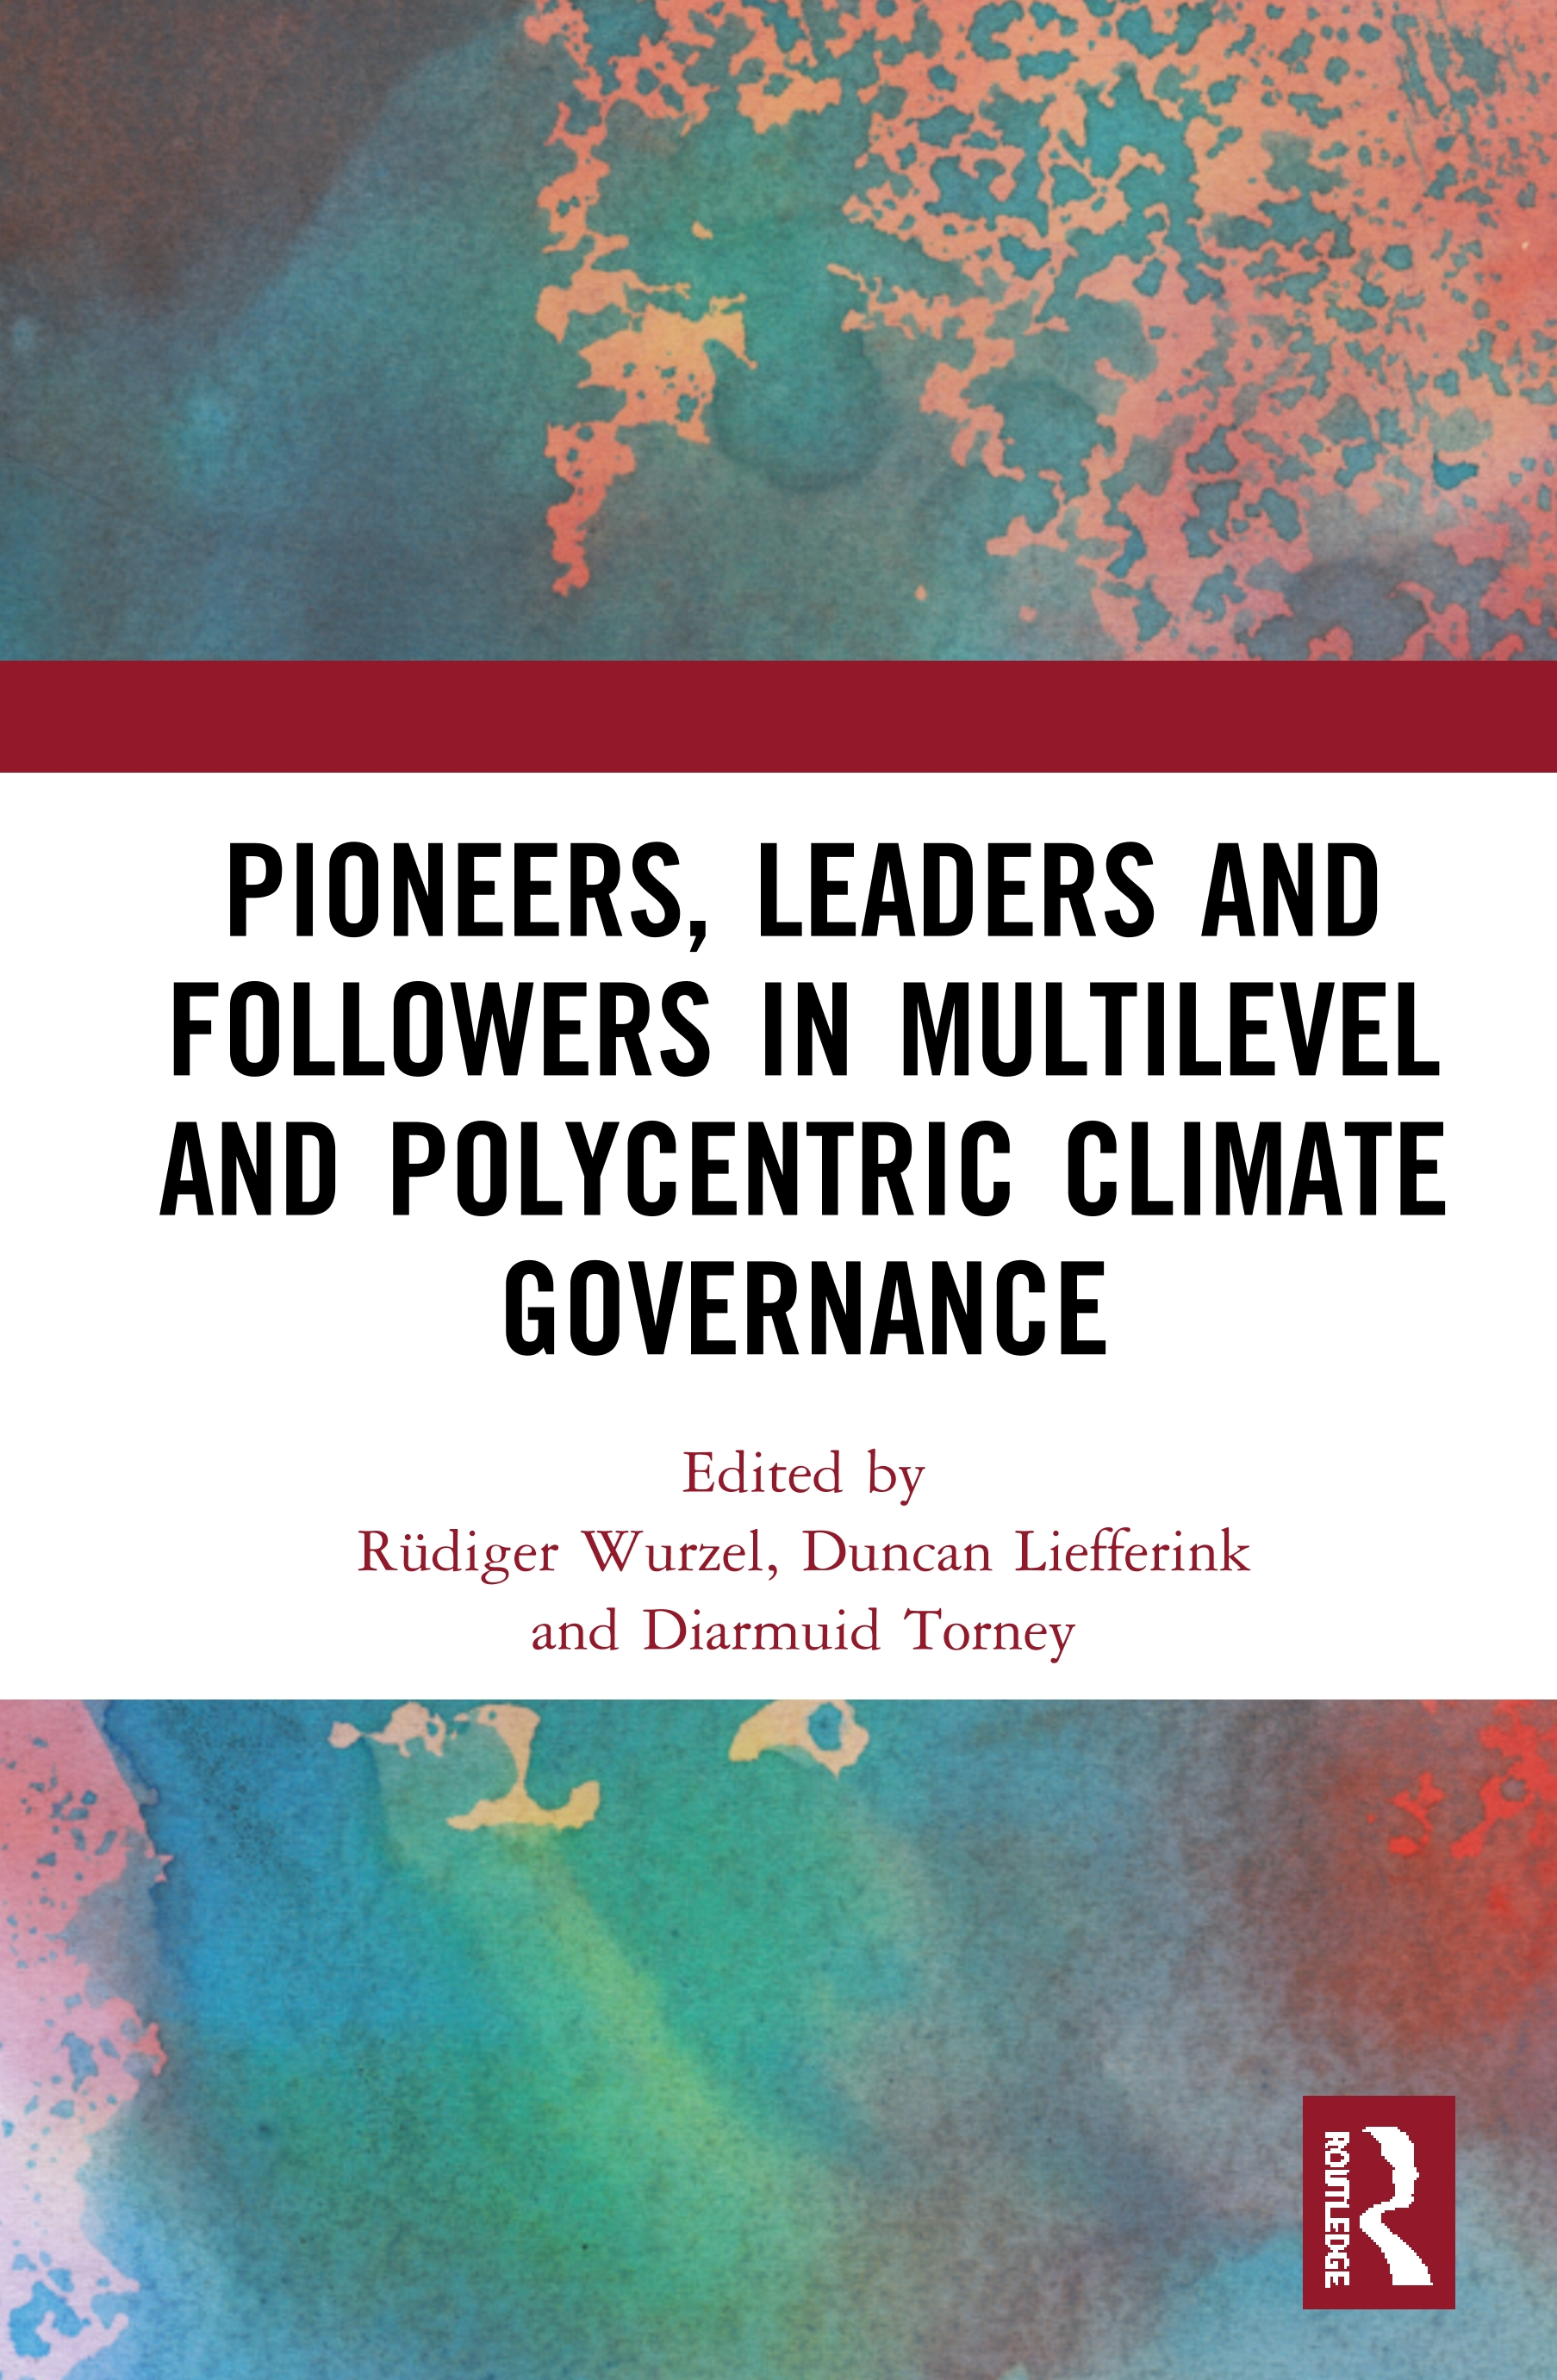 Pioneers, Leaders and Followers in Multilevel and Polycentric Climate Governance book cover